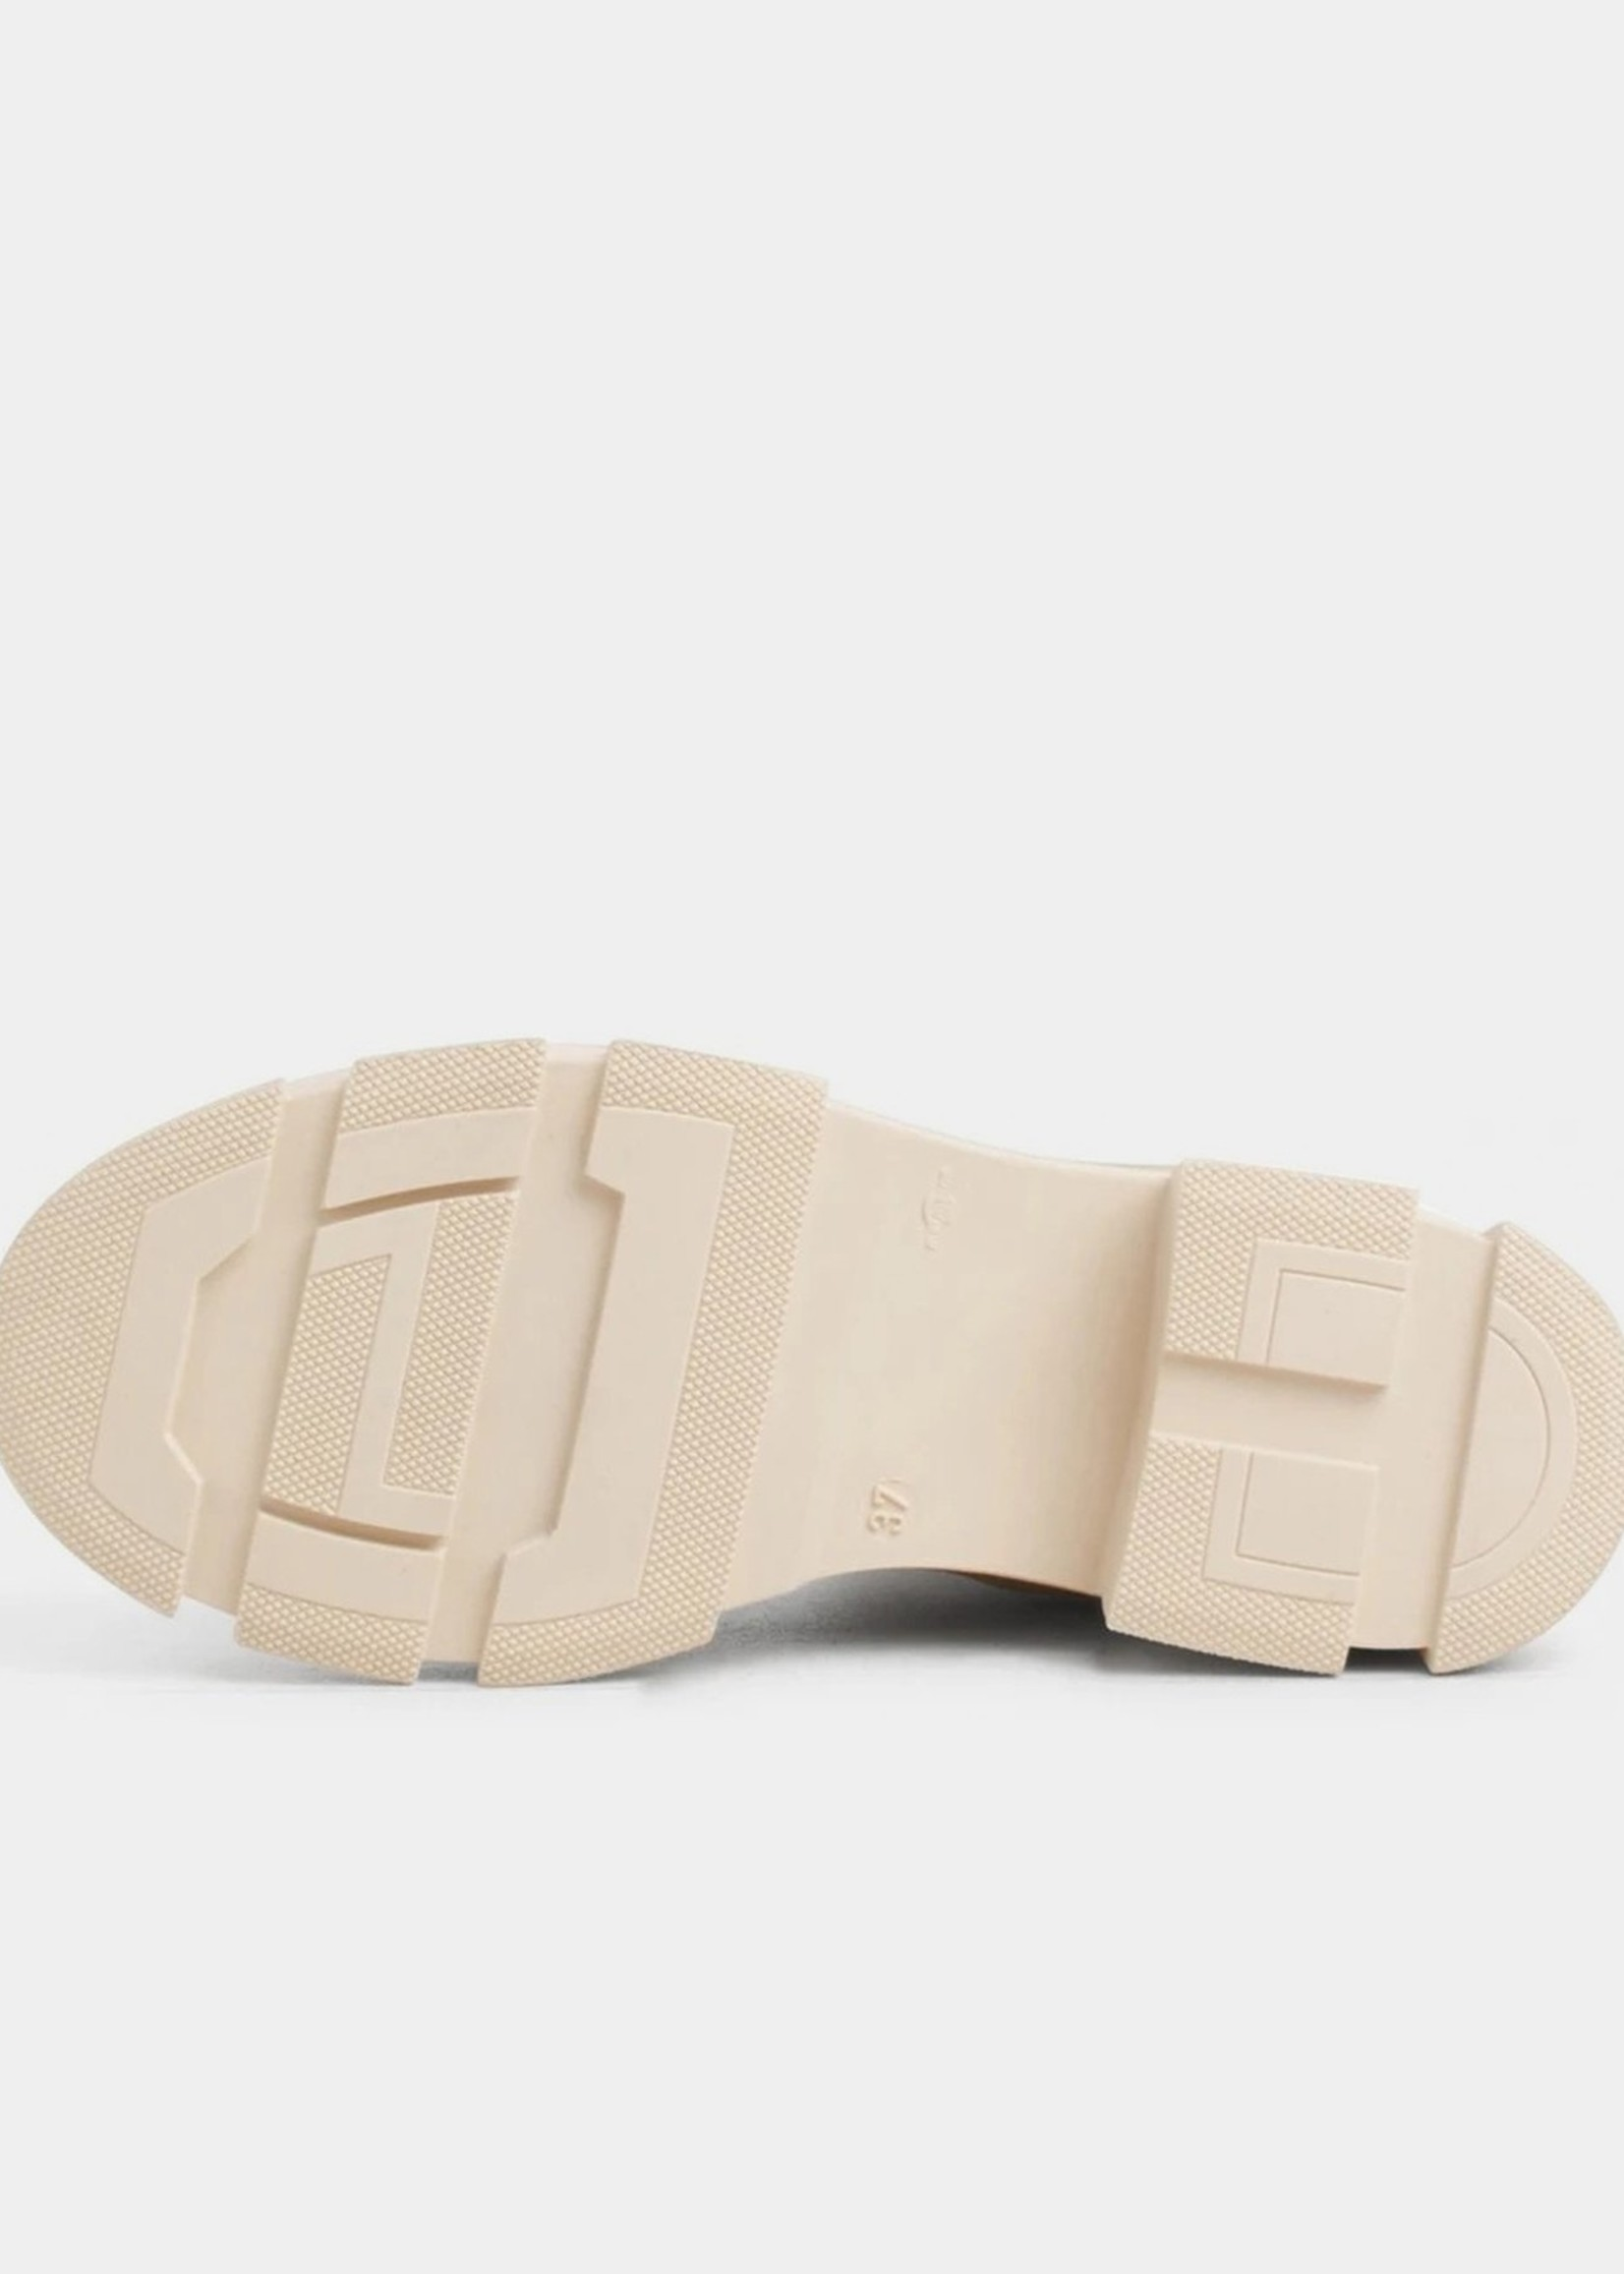 Garment Project Elise Chelsea - Off White Rubberised Leather